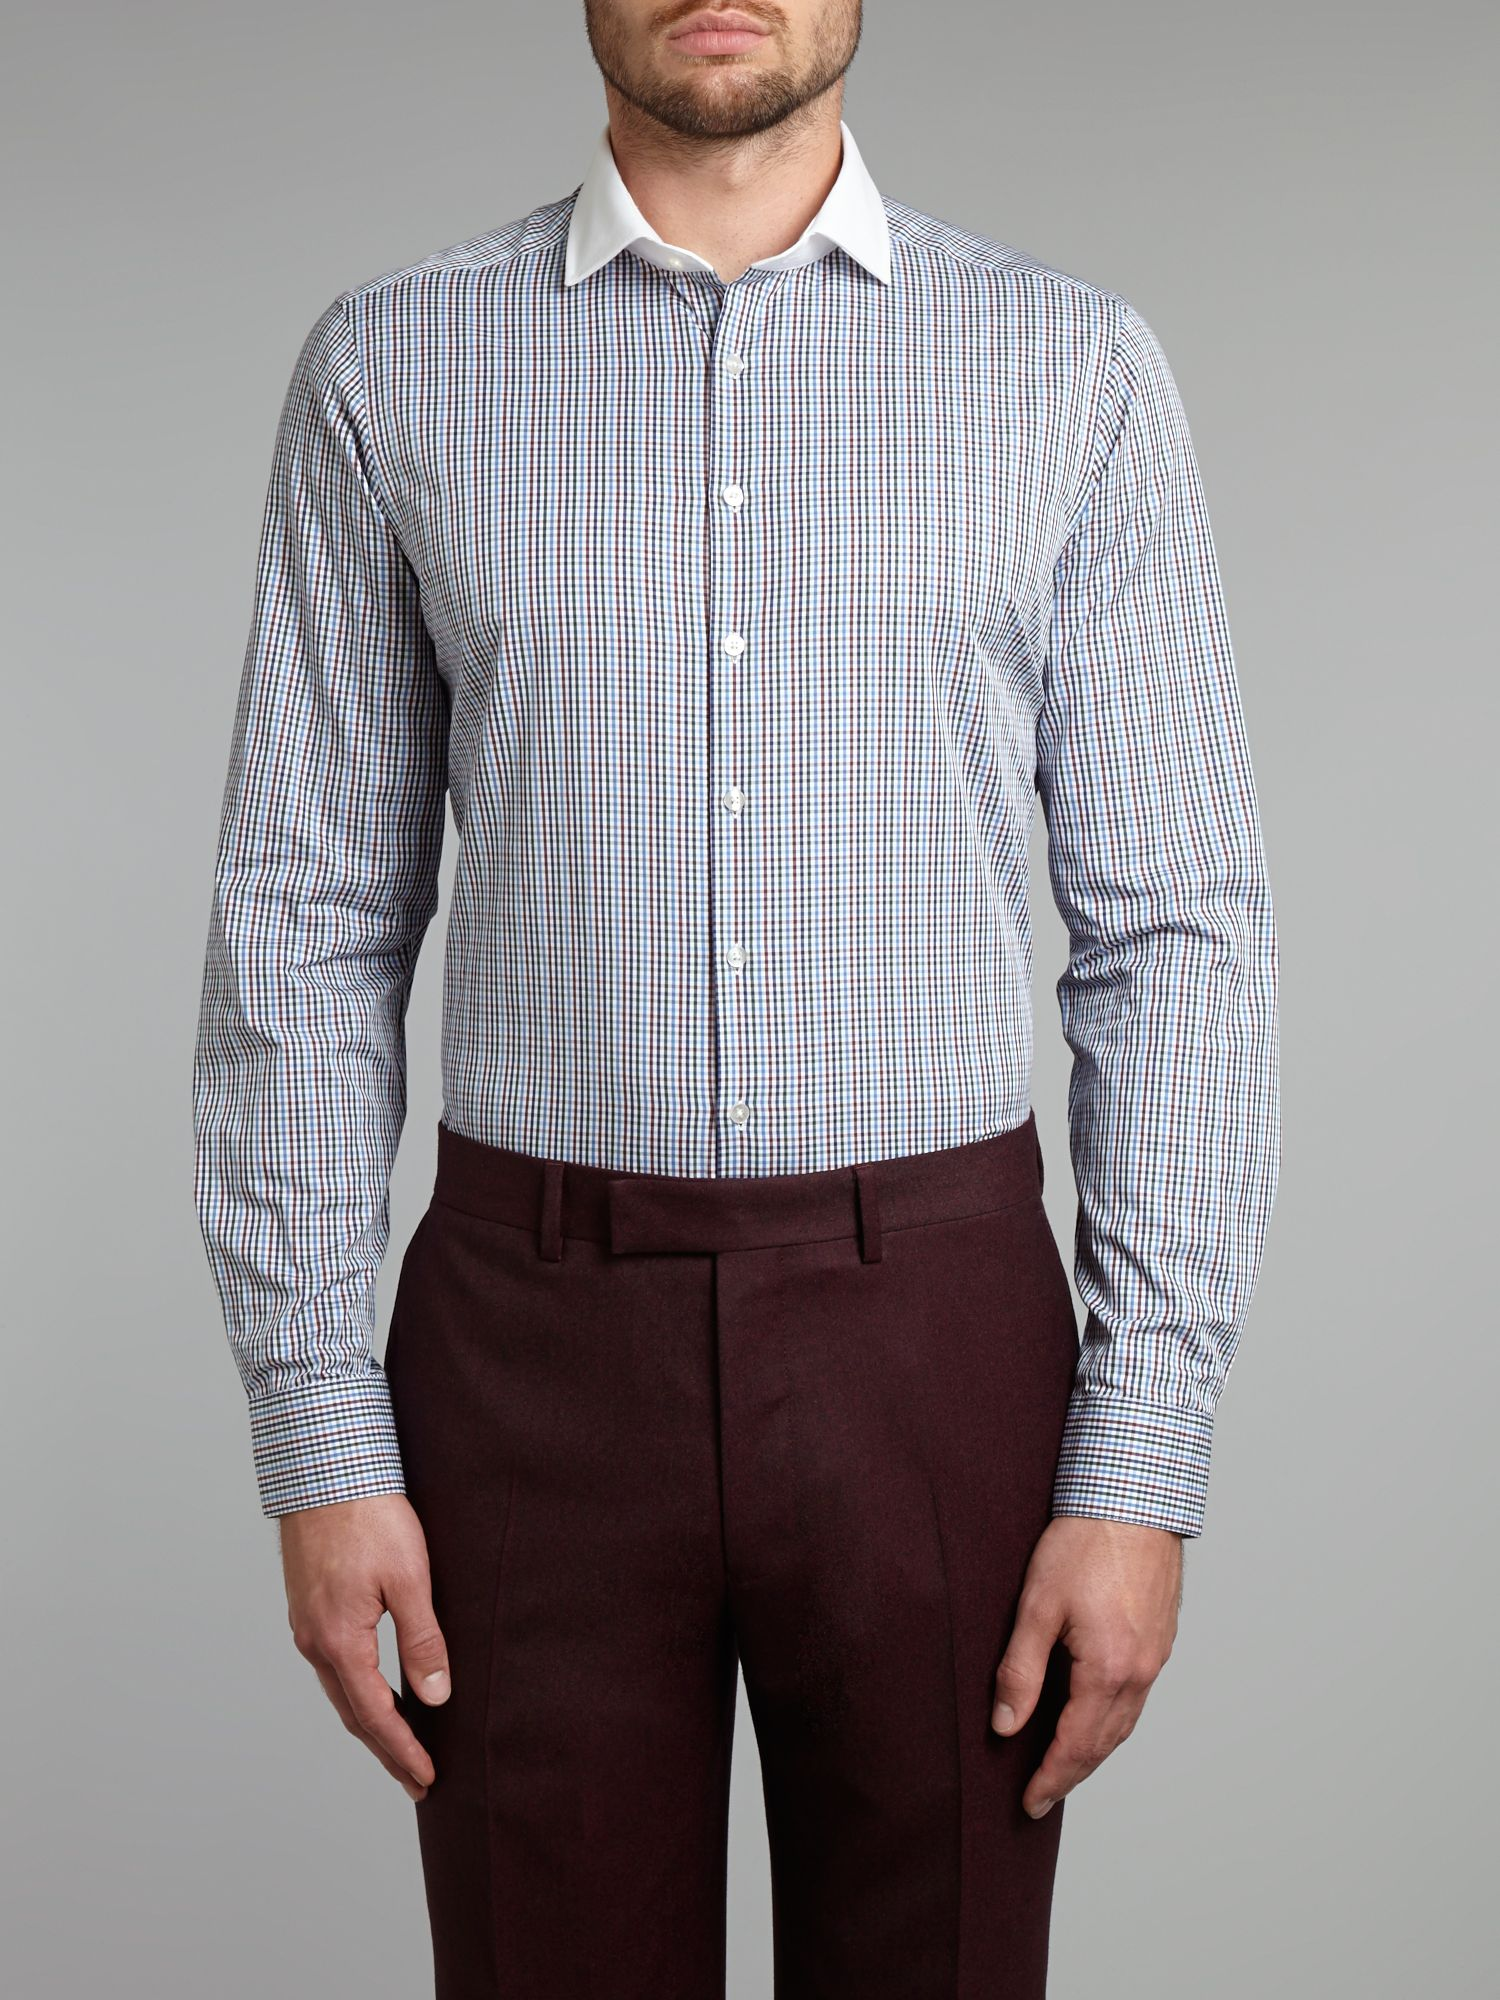 Coloured gingham white collared slim fit shirt